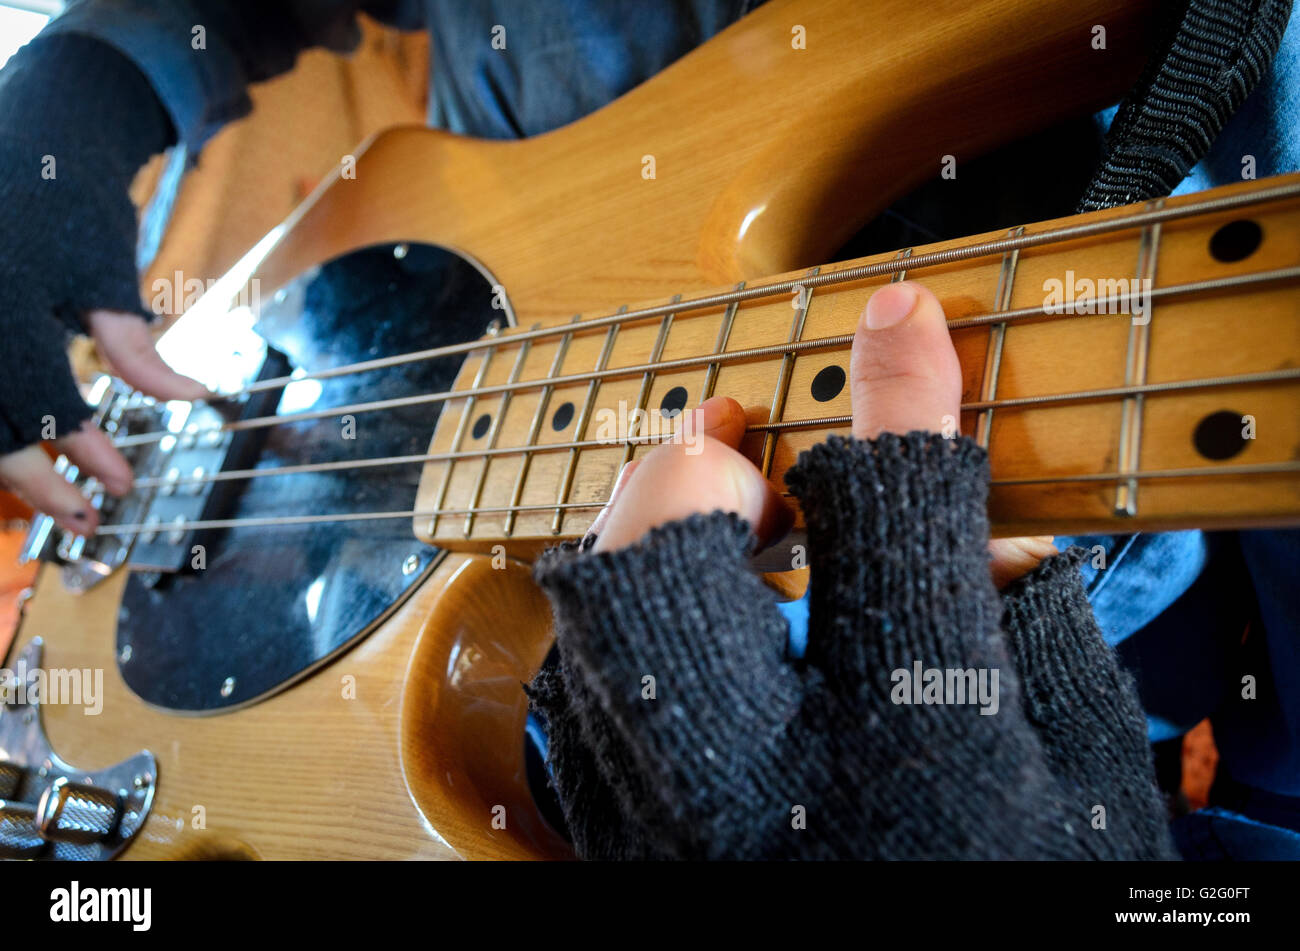 Fingerless gloves canada - Playing Bass Guitar Wearing Fingerless Gloves Stock Image